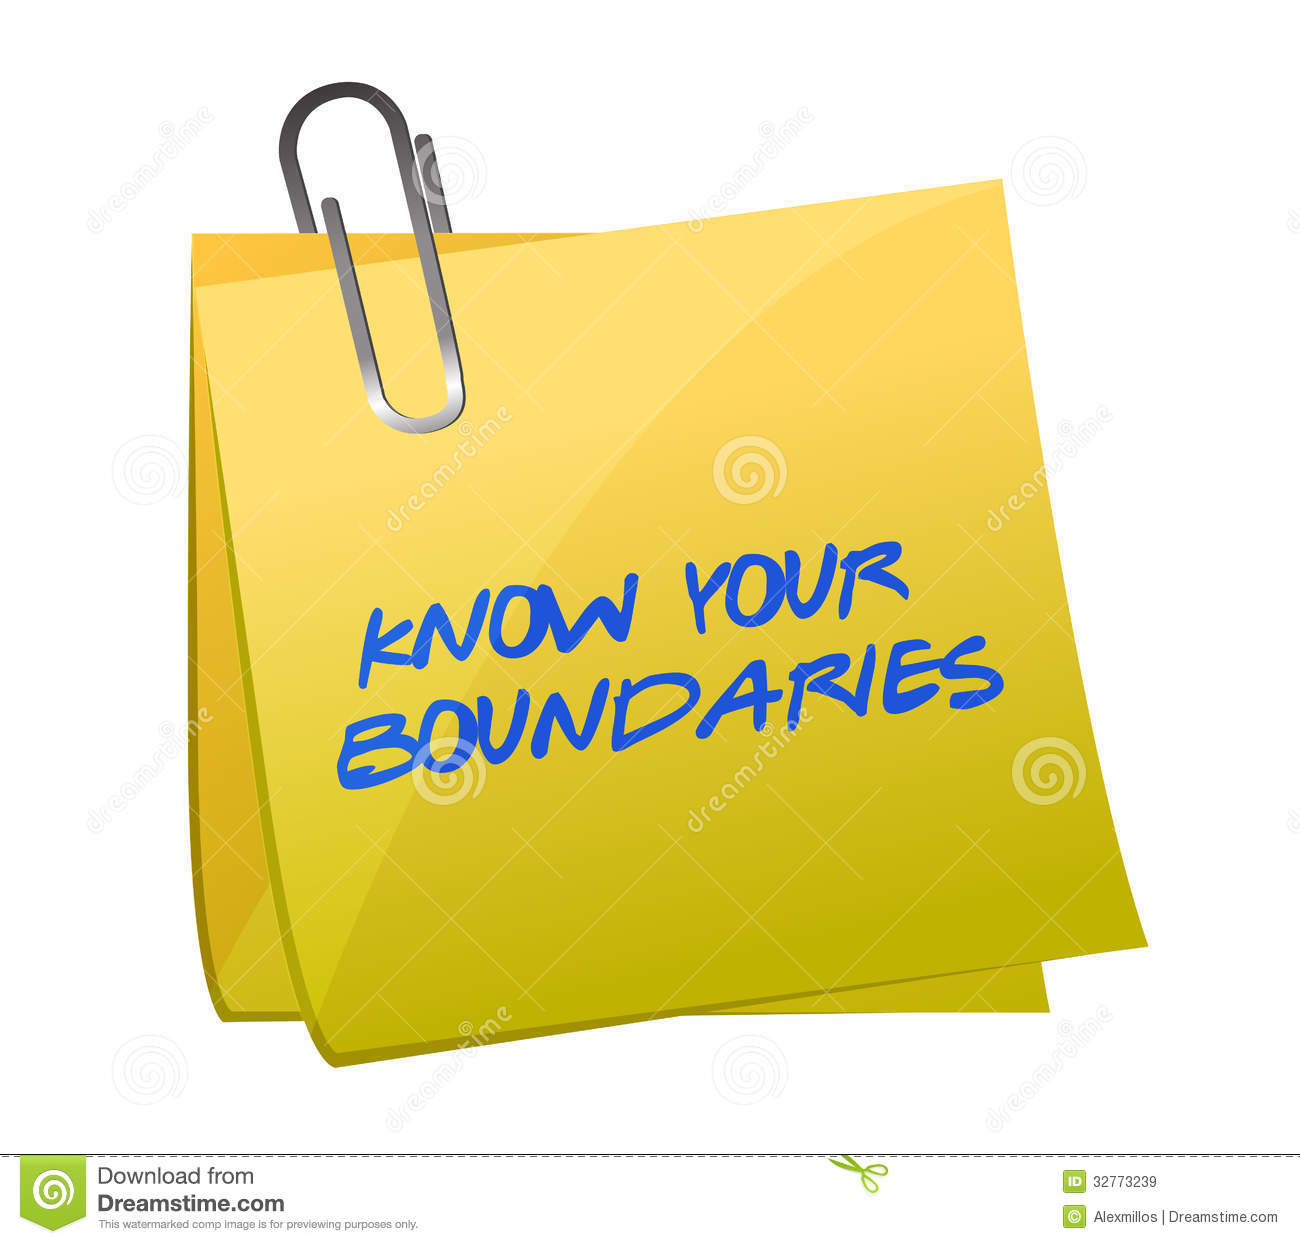 Boundaries clip art.